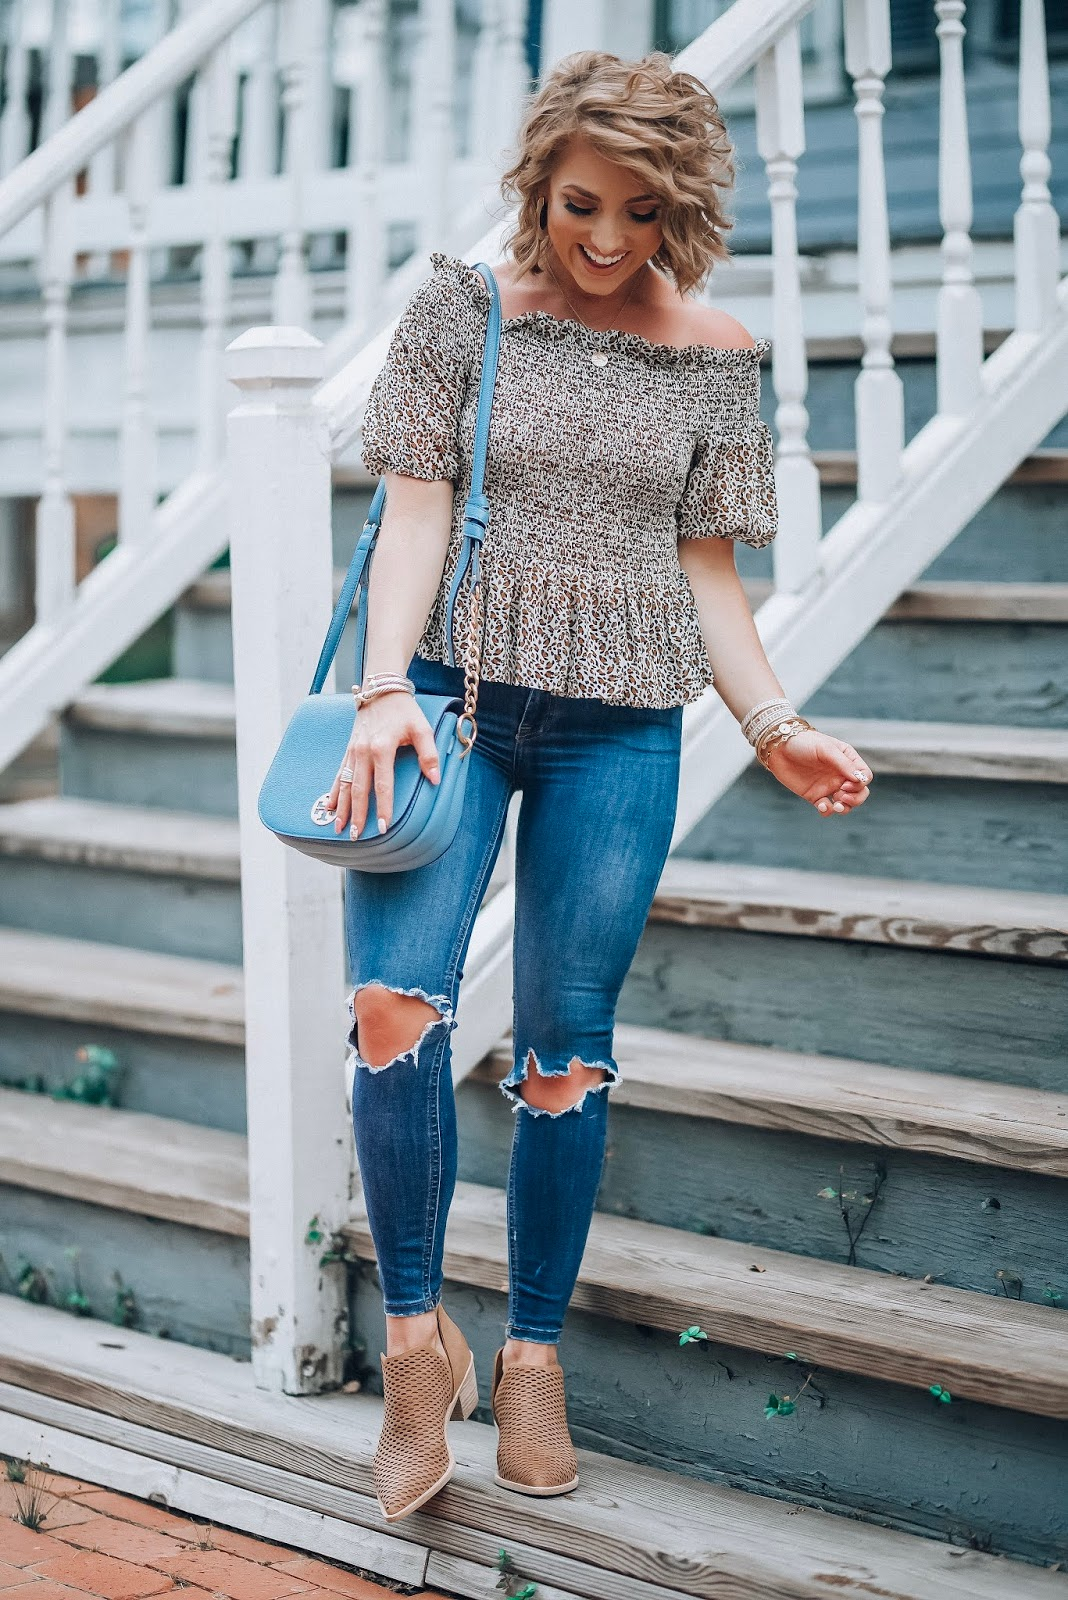 Leopard Lovin' - Under $50 Smocked Leopard Peplum Top, Busted Knee Jeans, Perforated Booties - Pre-Fall Style - Something Delightful Blog